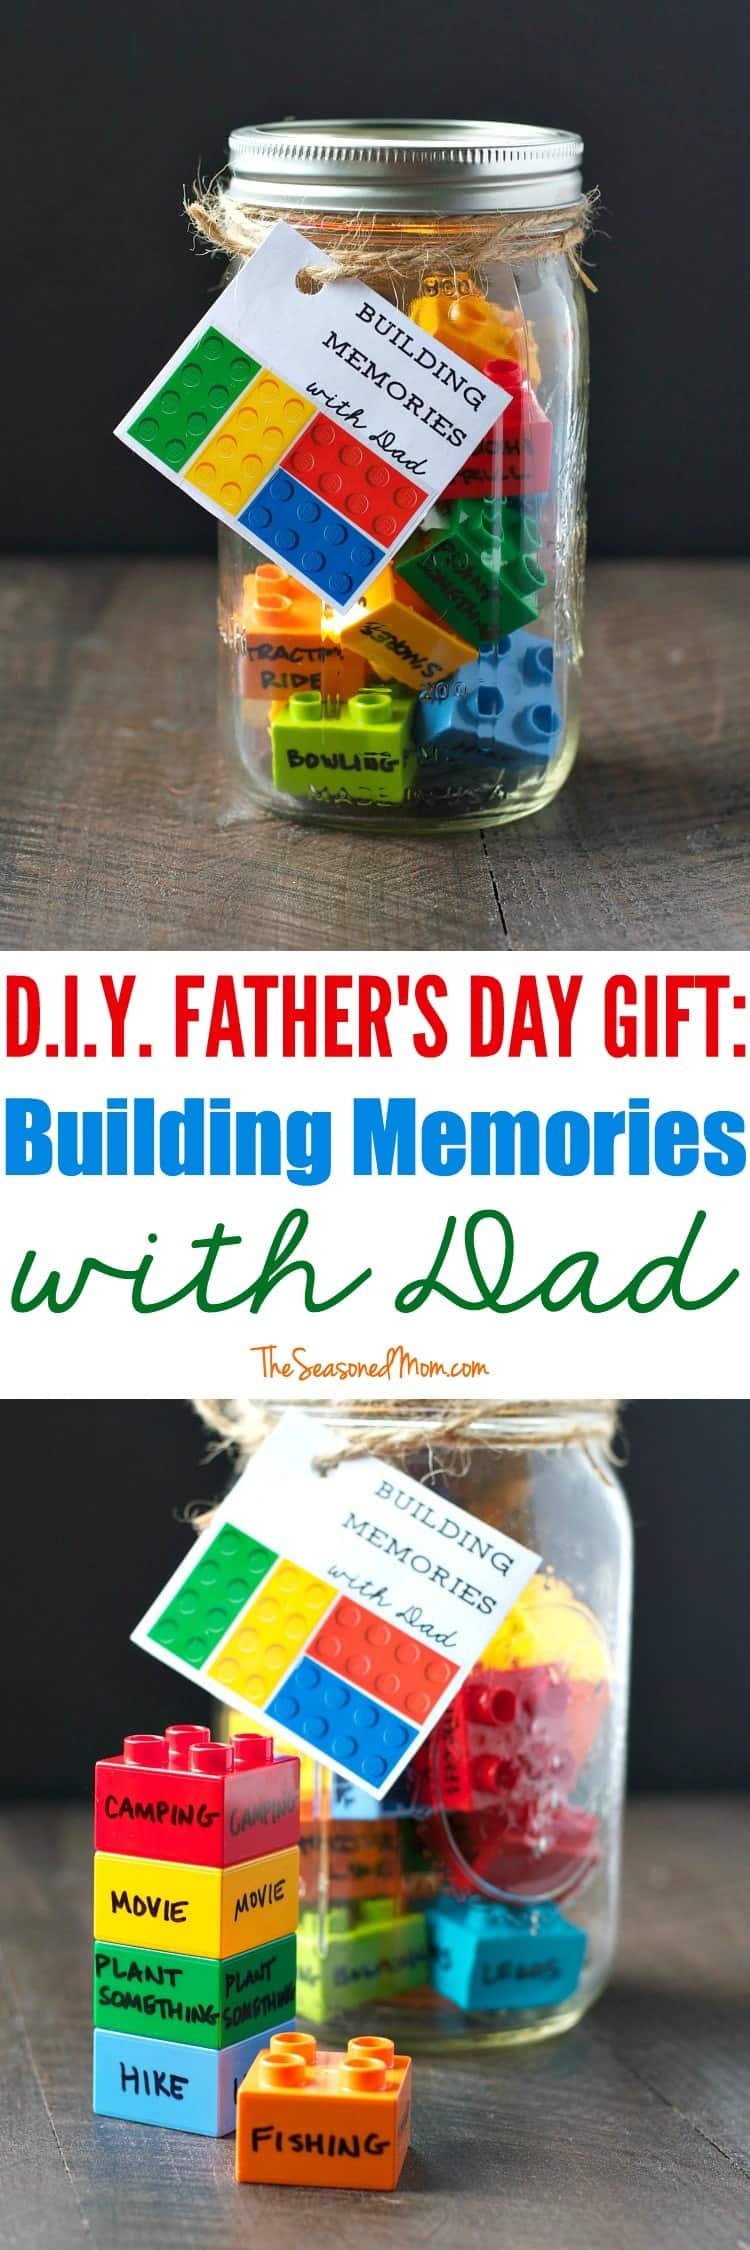 DIY Father's Day Gift: Building Memories with Dad - The ...